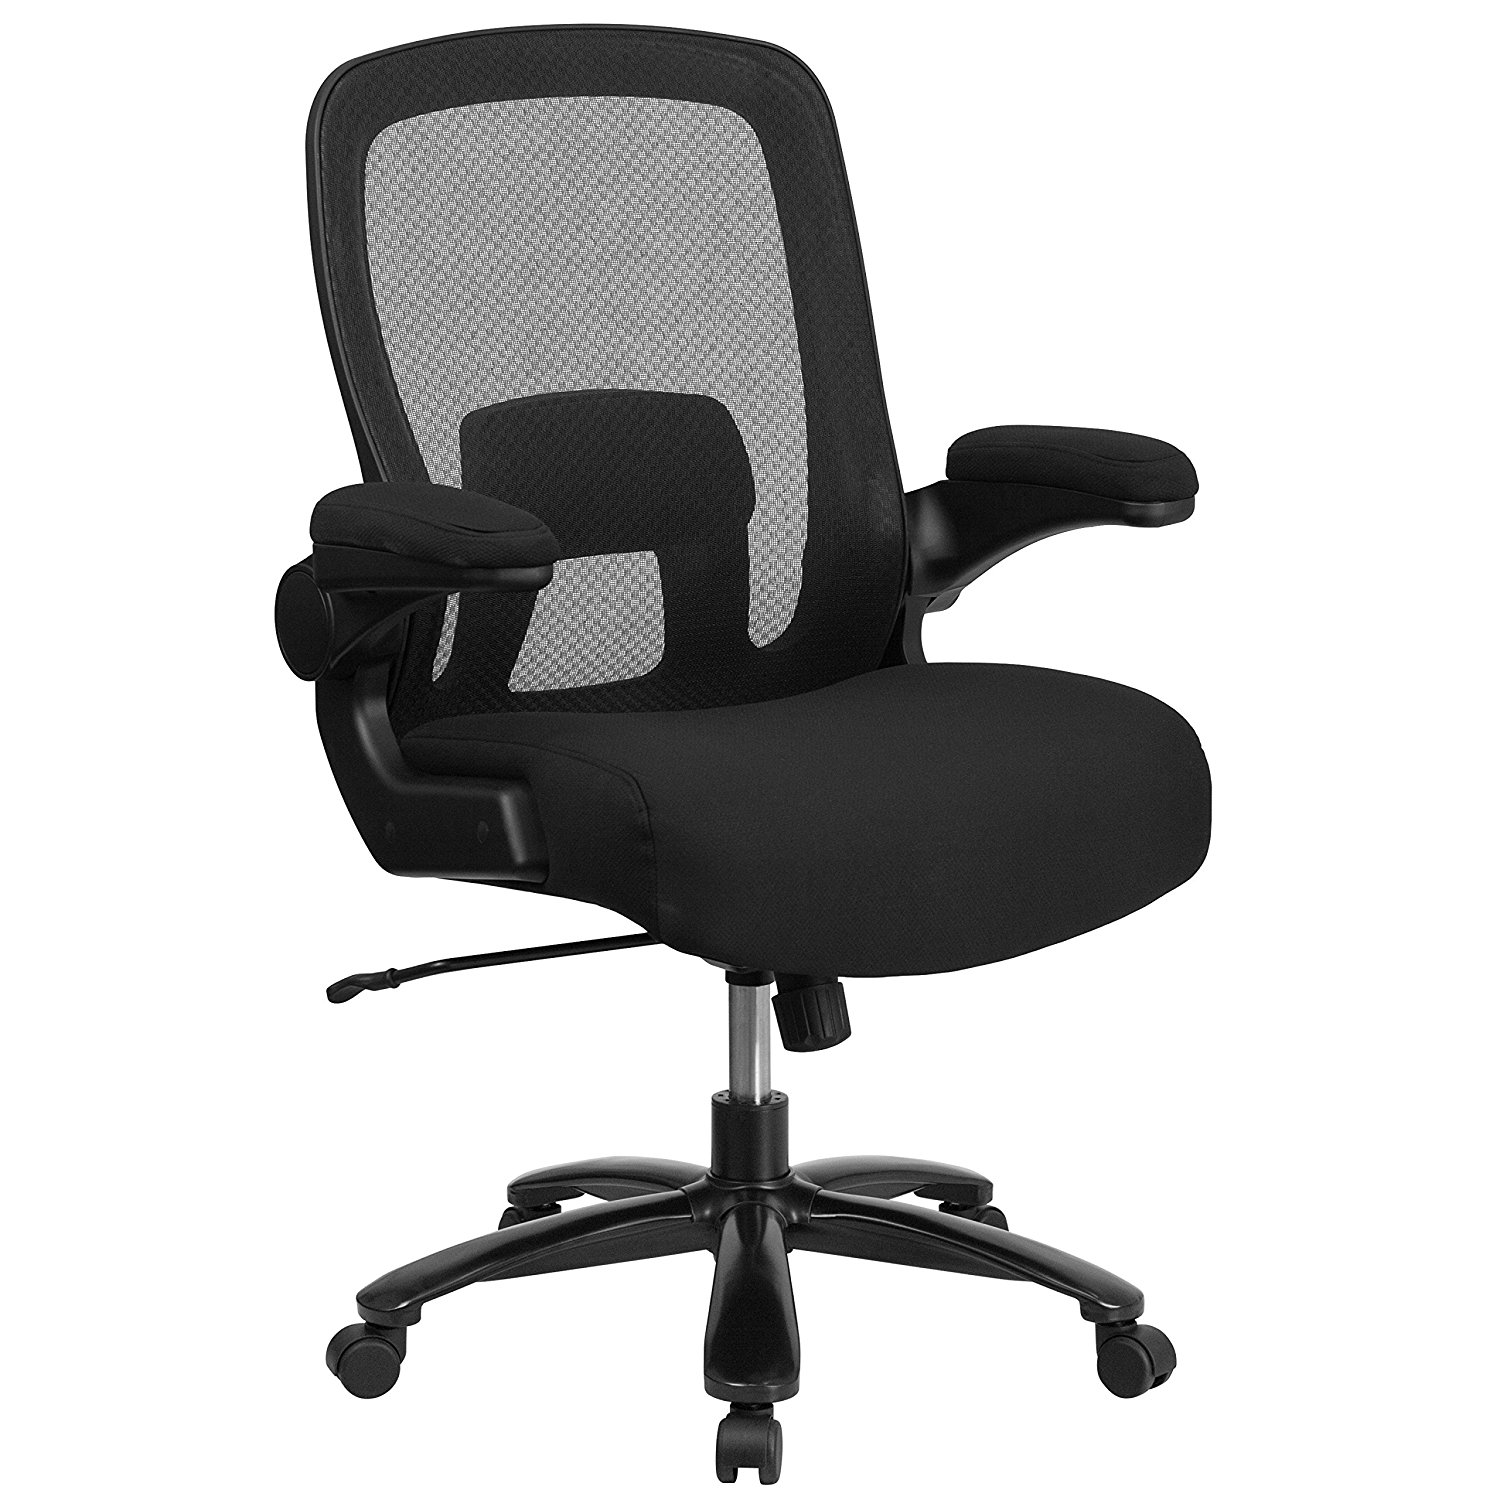 500 Lb Weight Capacity Mesh Office Chair Review Best